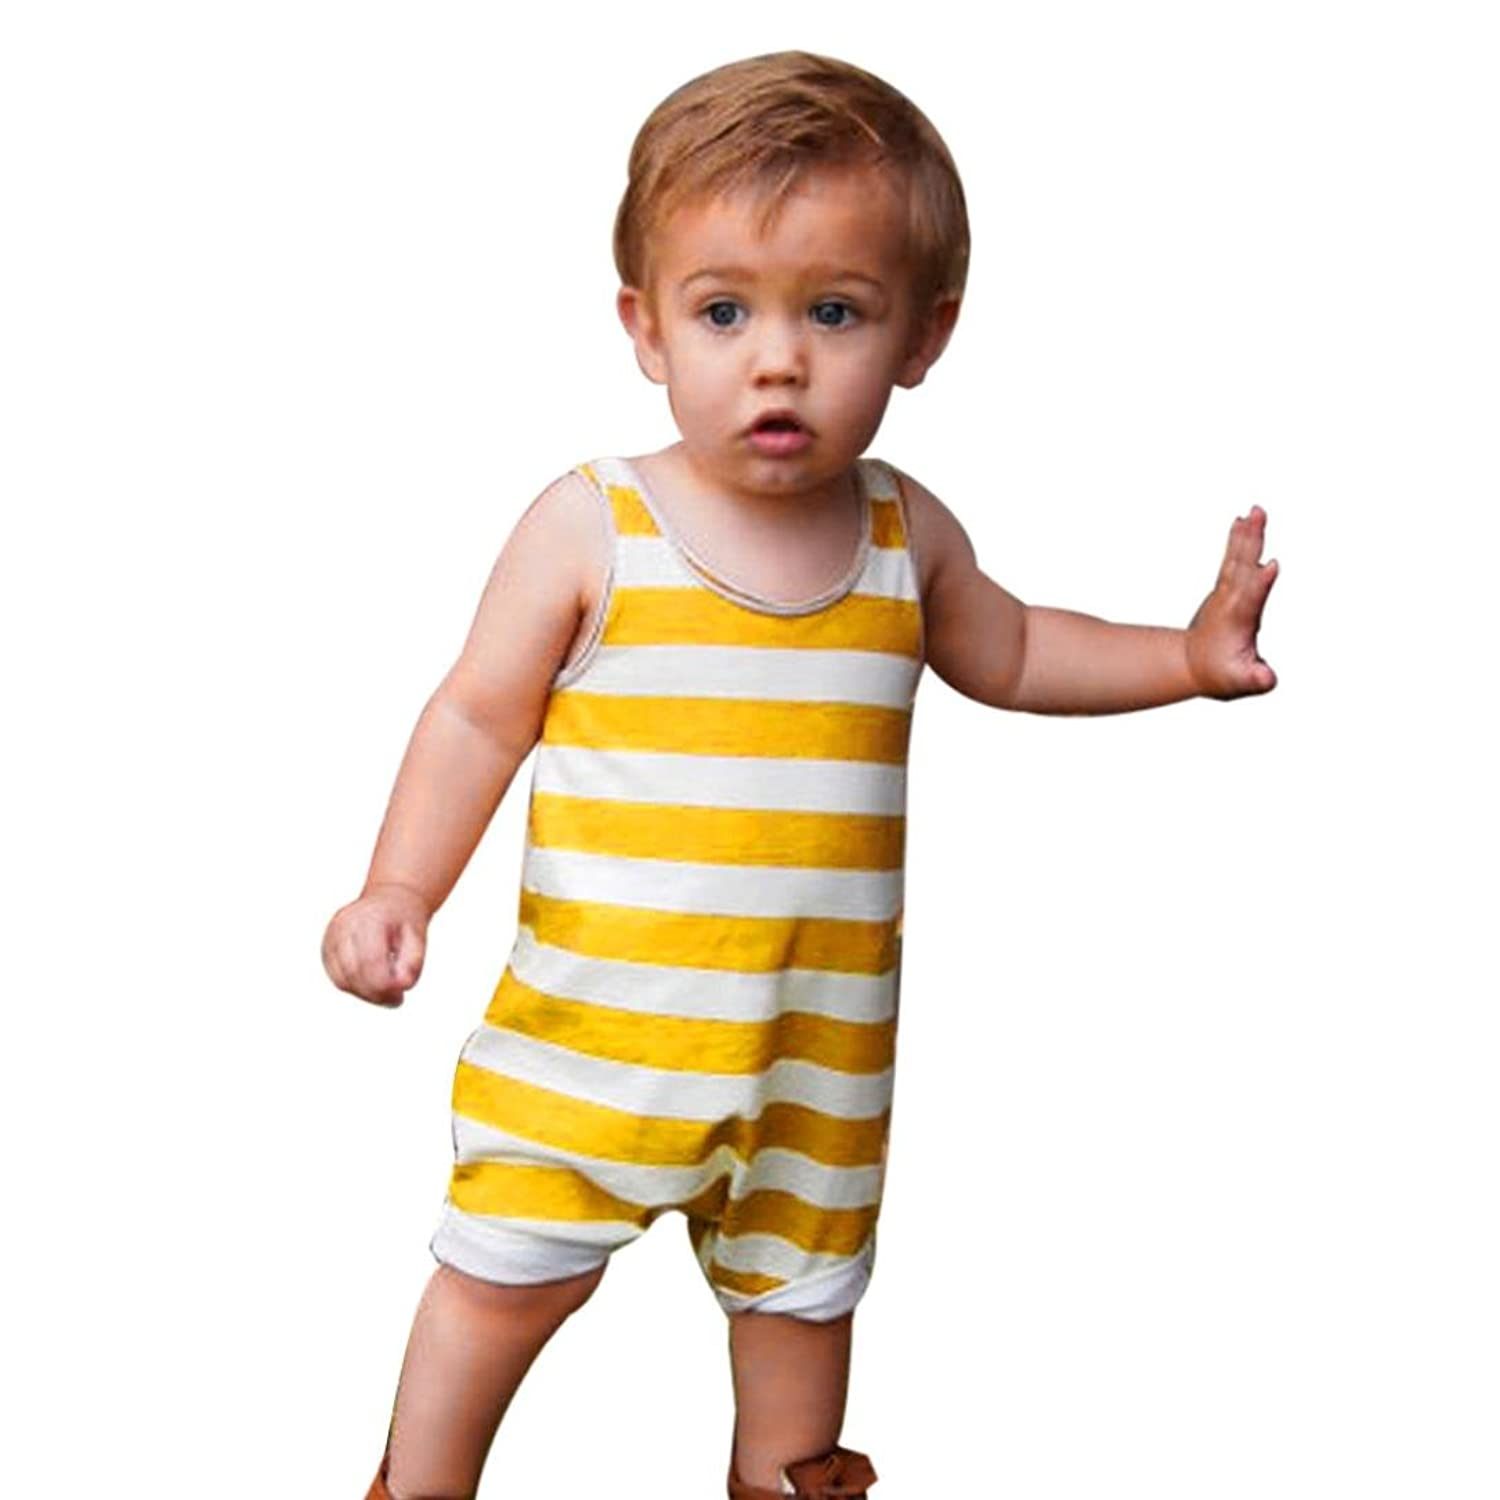 Vicbovo Clearance Sale Baby Romper Toddler Infant Boy Girl Cute